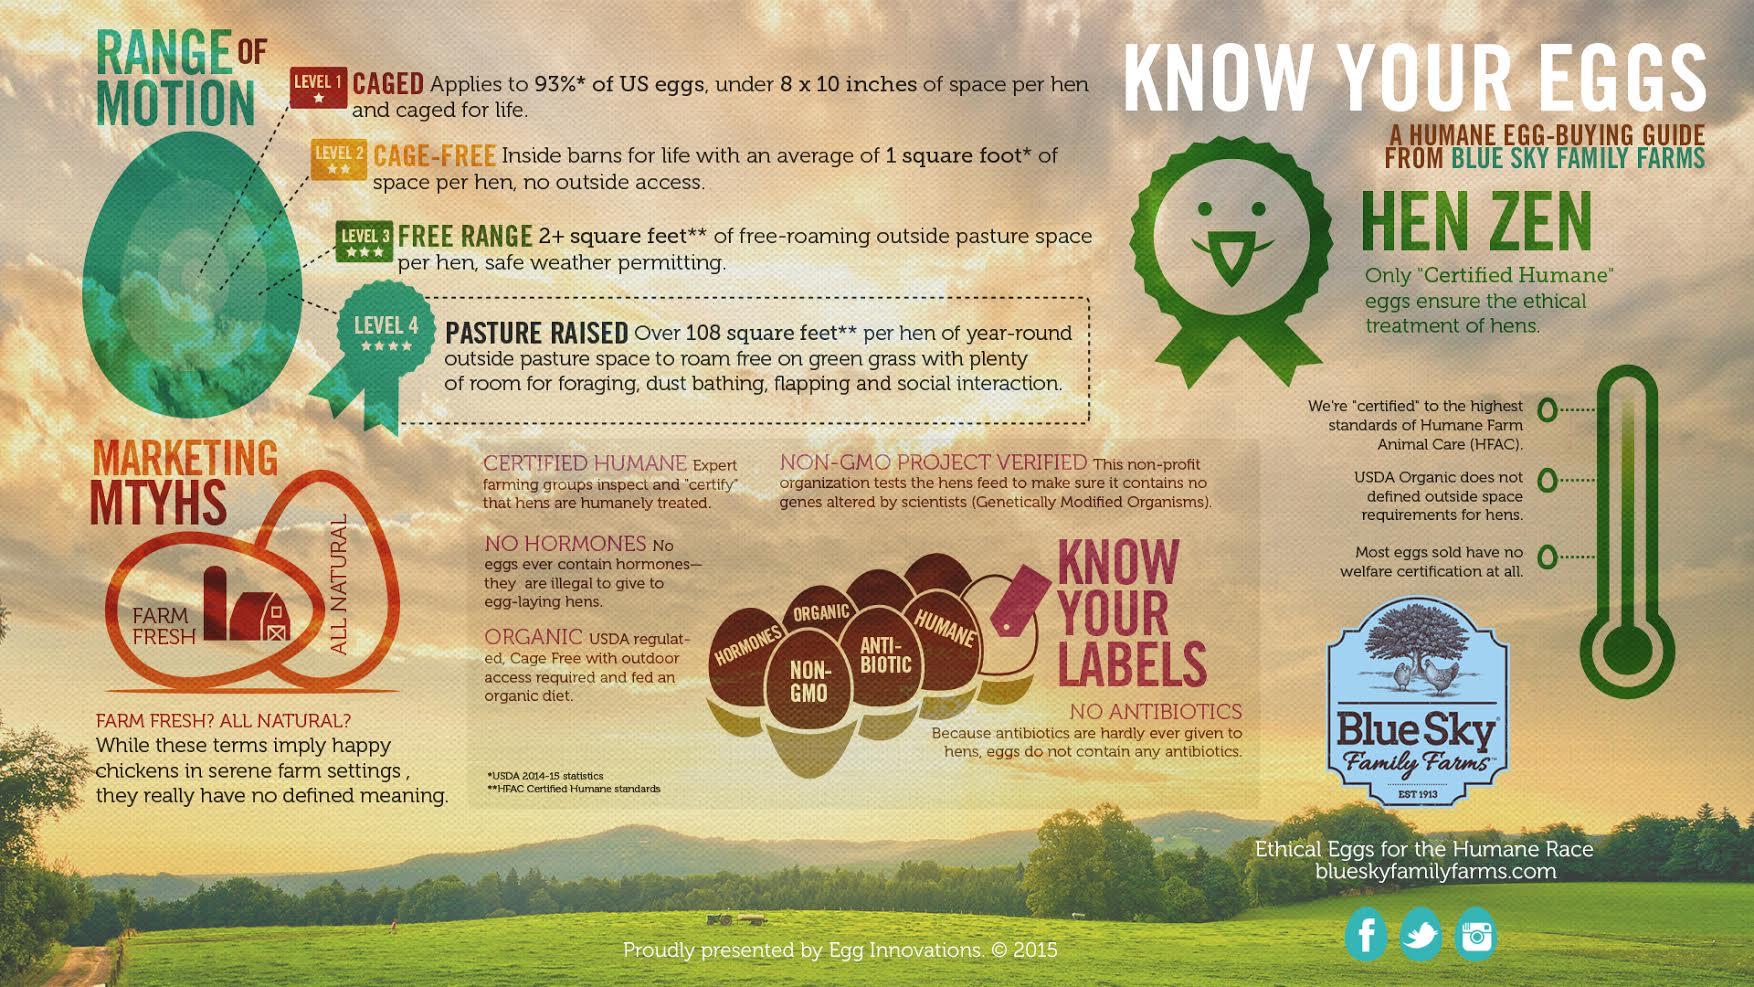 Know your eggs infographic